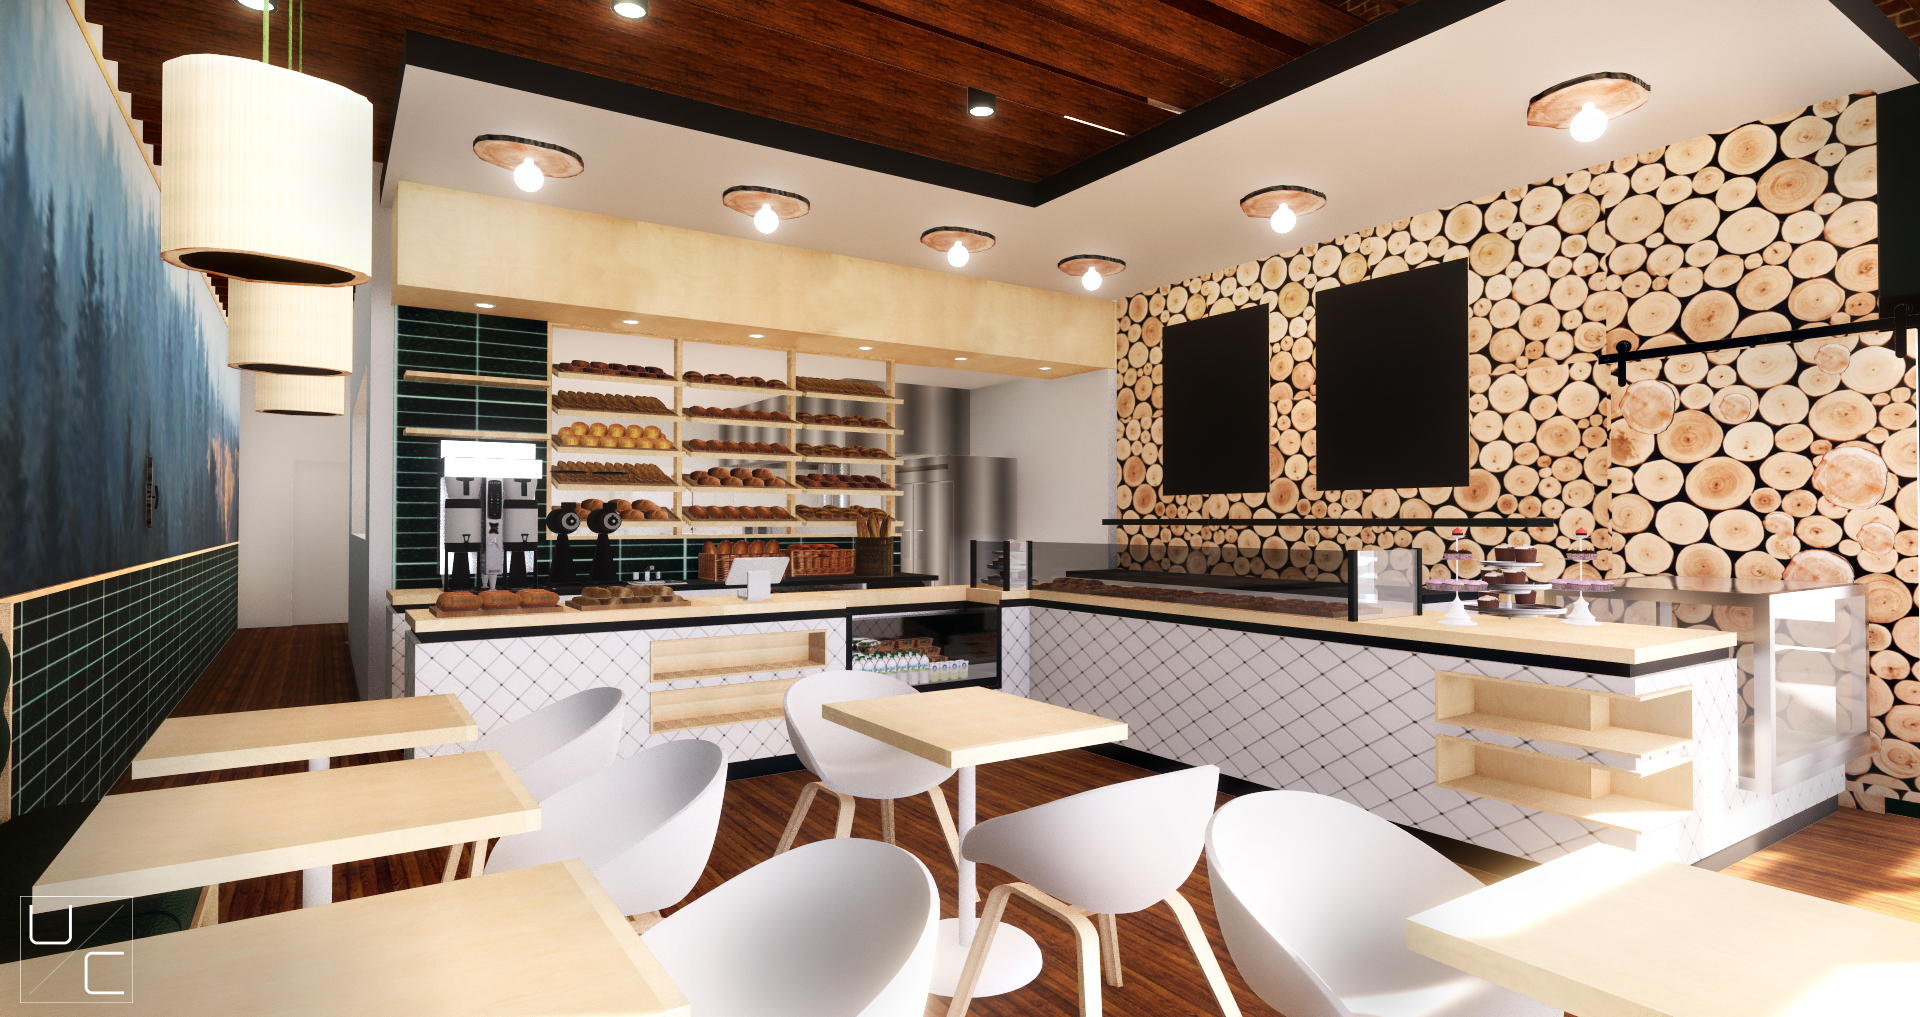 INTERIOR- Rendering from Banquette